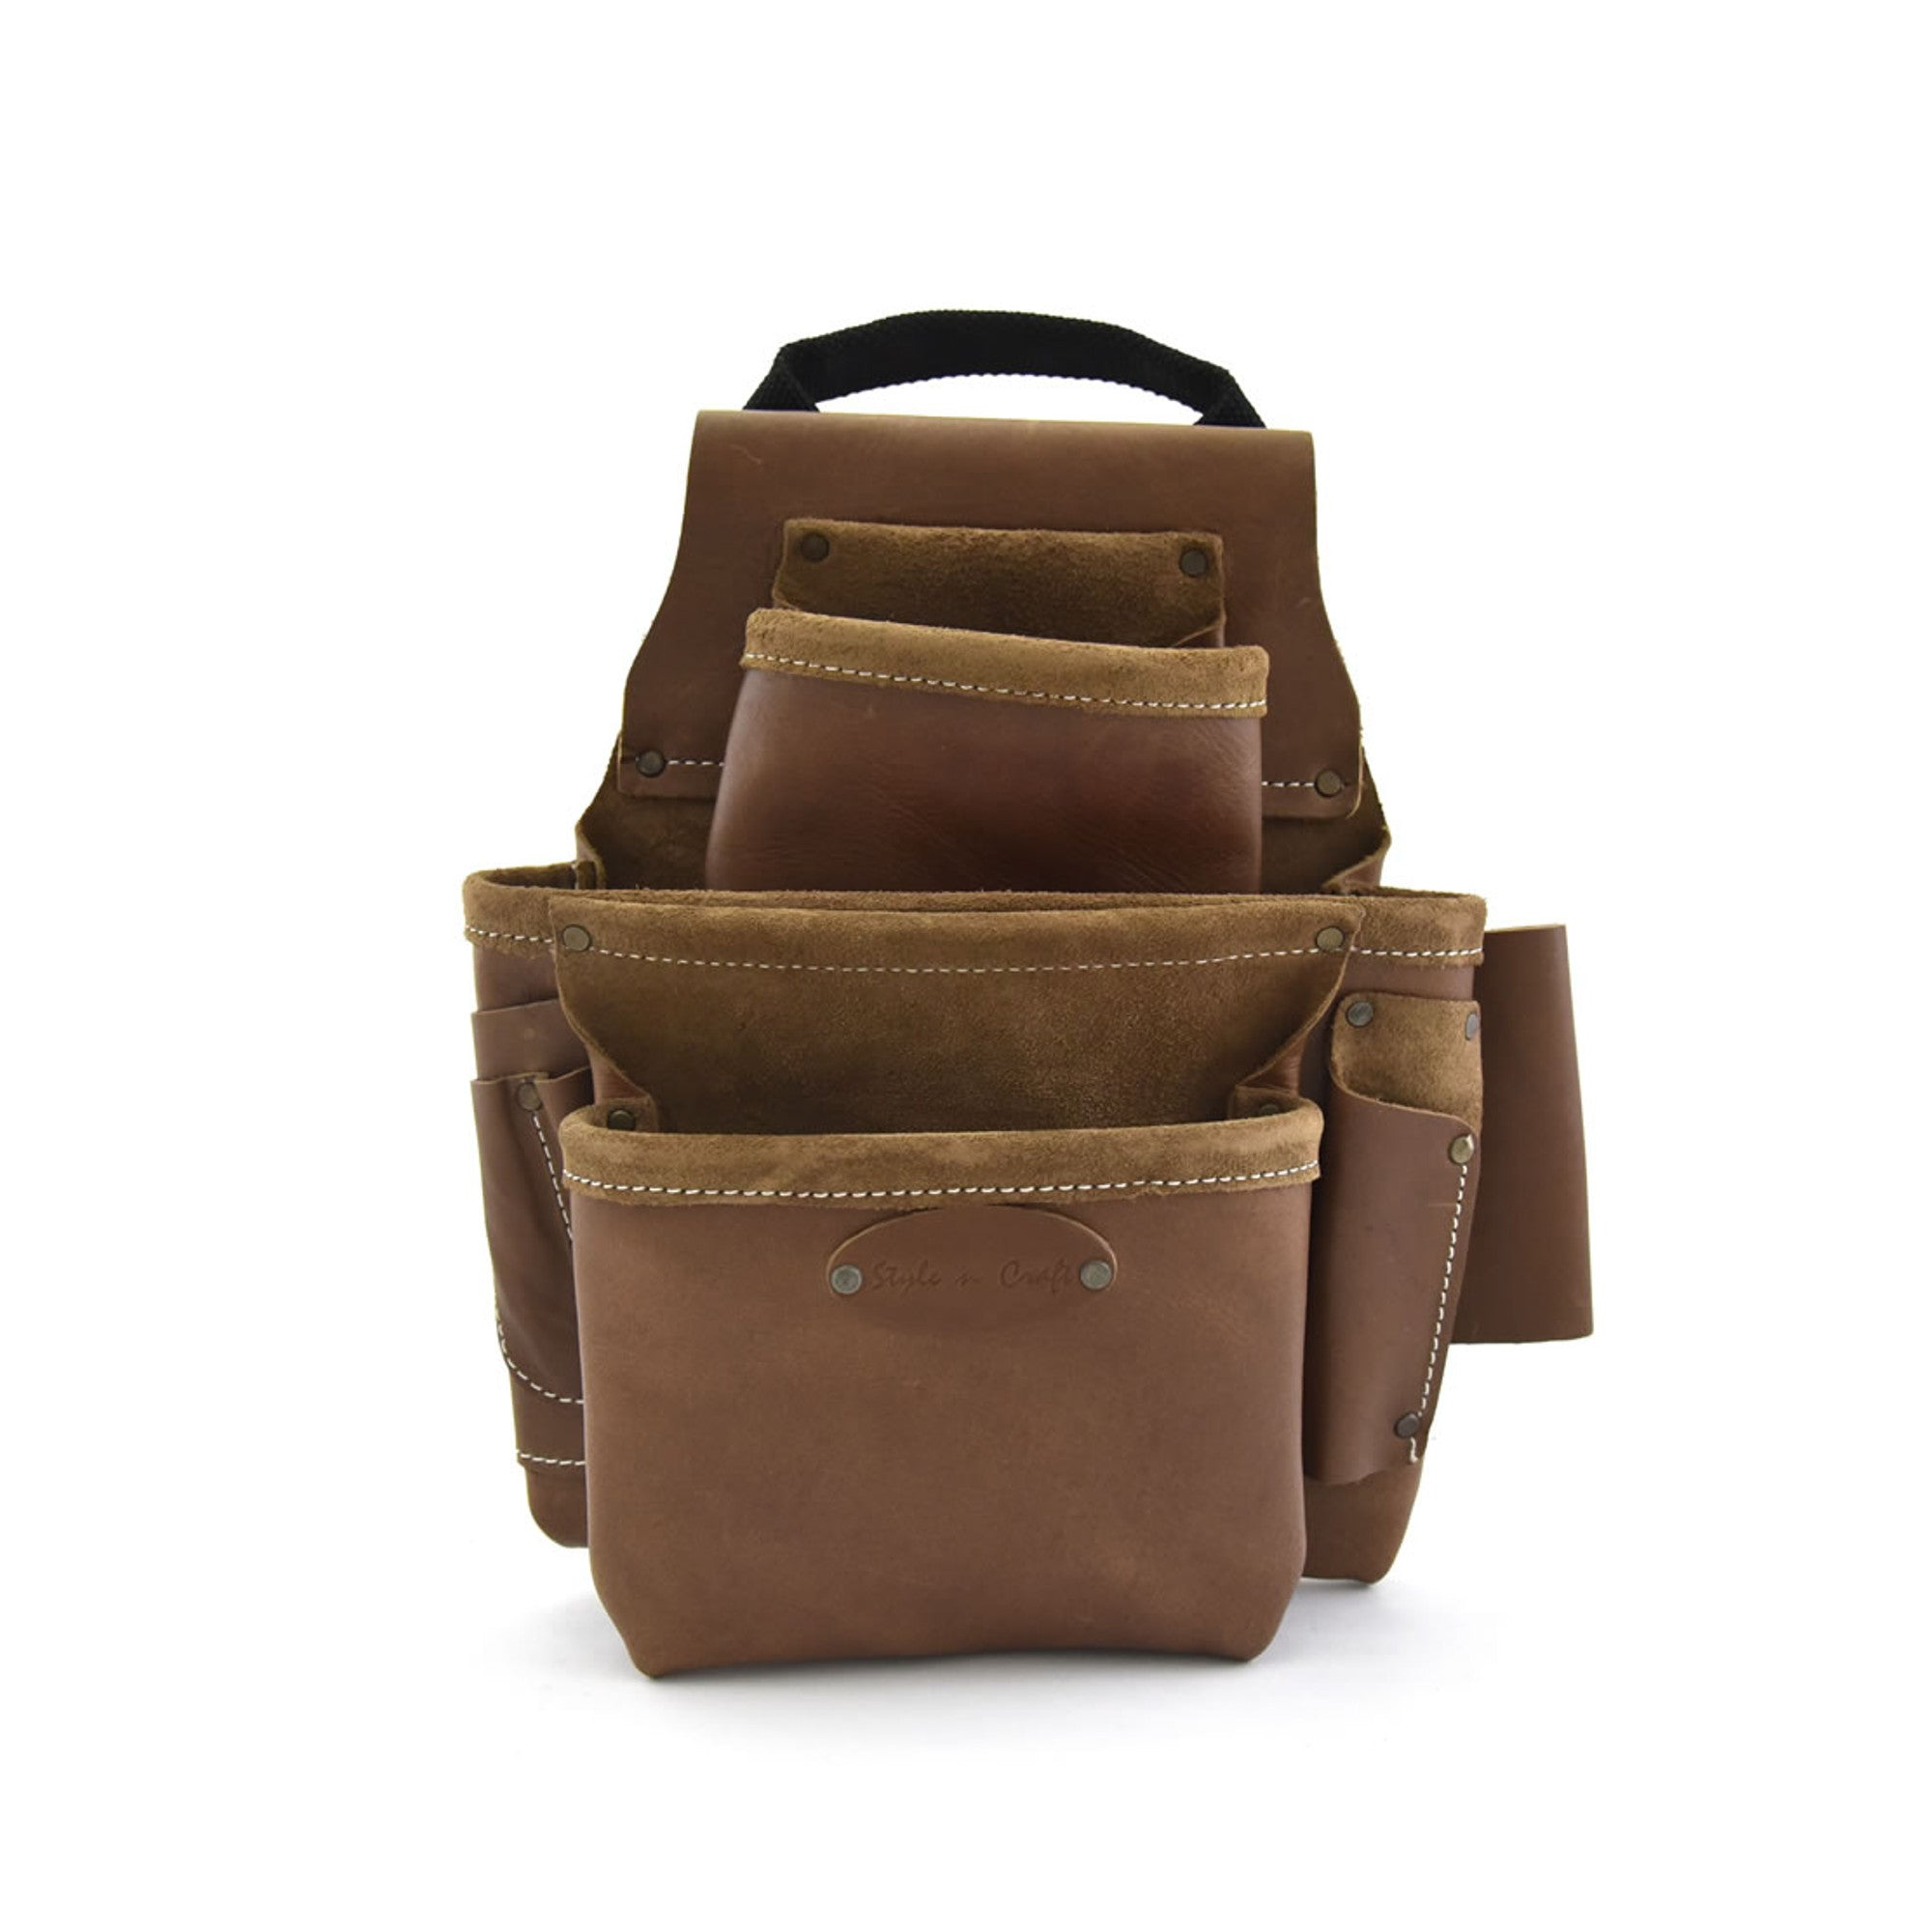 98436 - 8 Pocket Nail and Tool Pouch in Top Grain Leather in Dark Tan Color